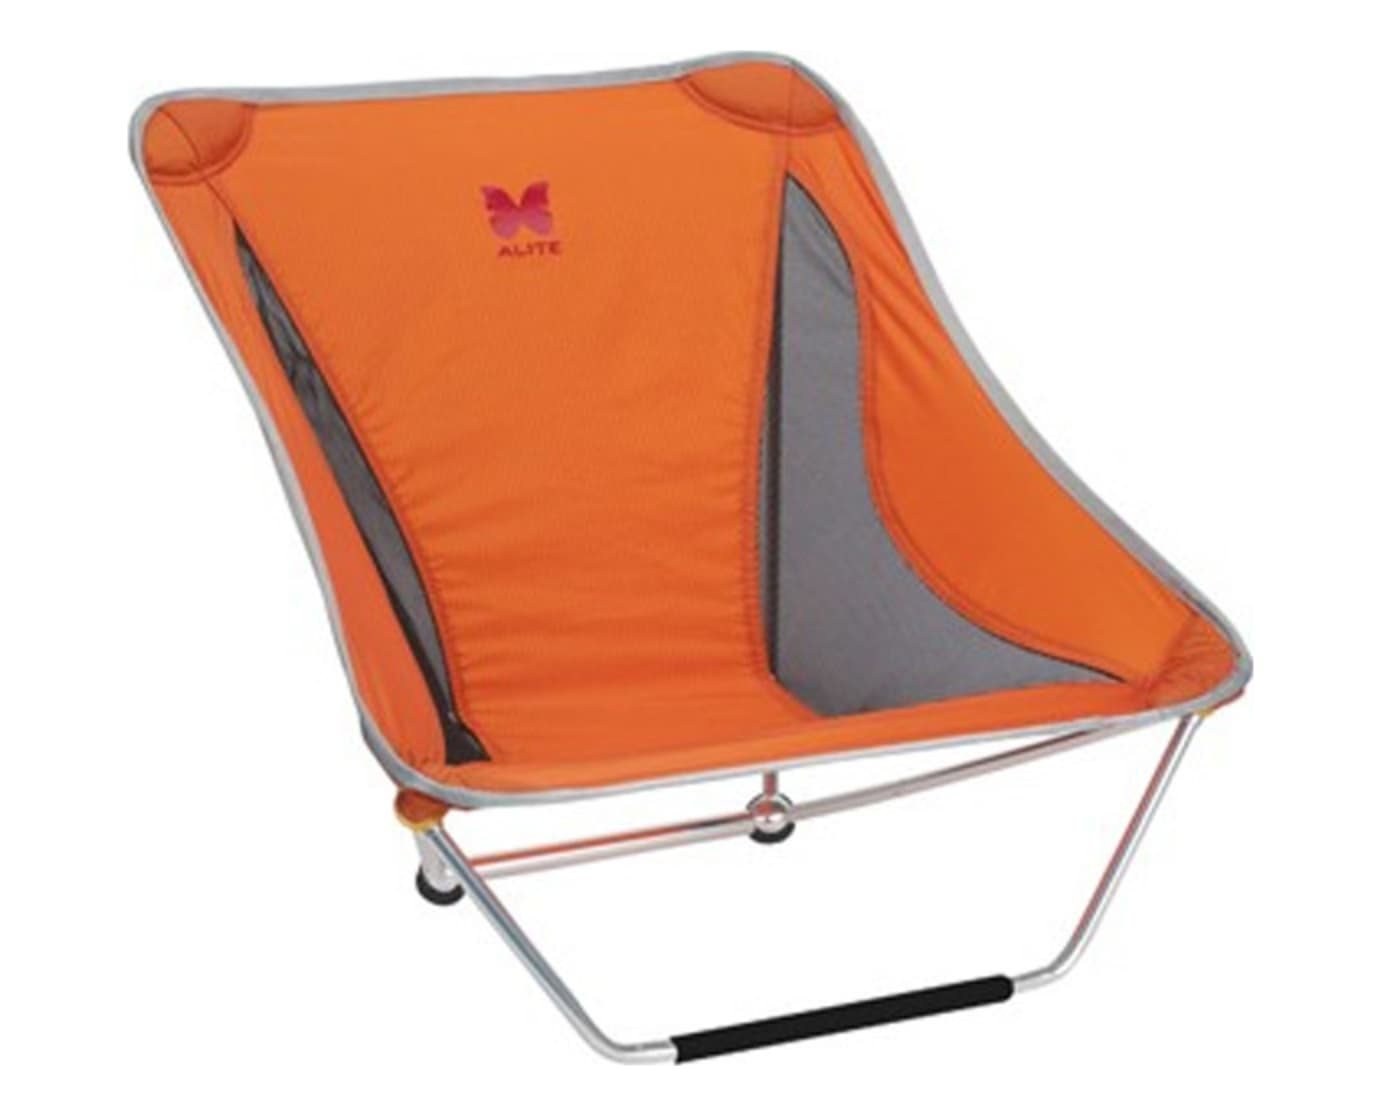 alite monarch chair canada office ireland mayfly camping jupiter orange